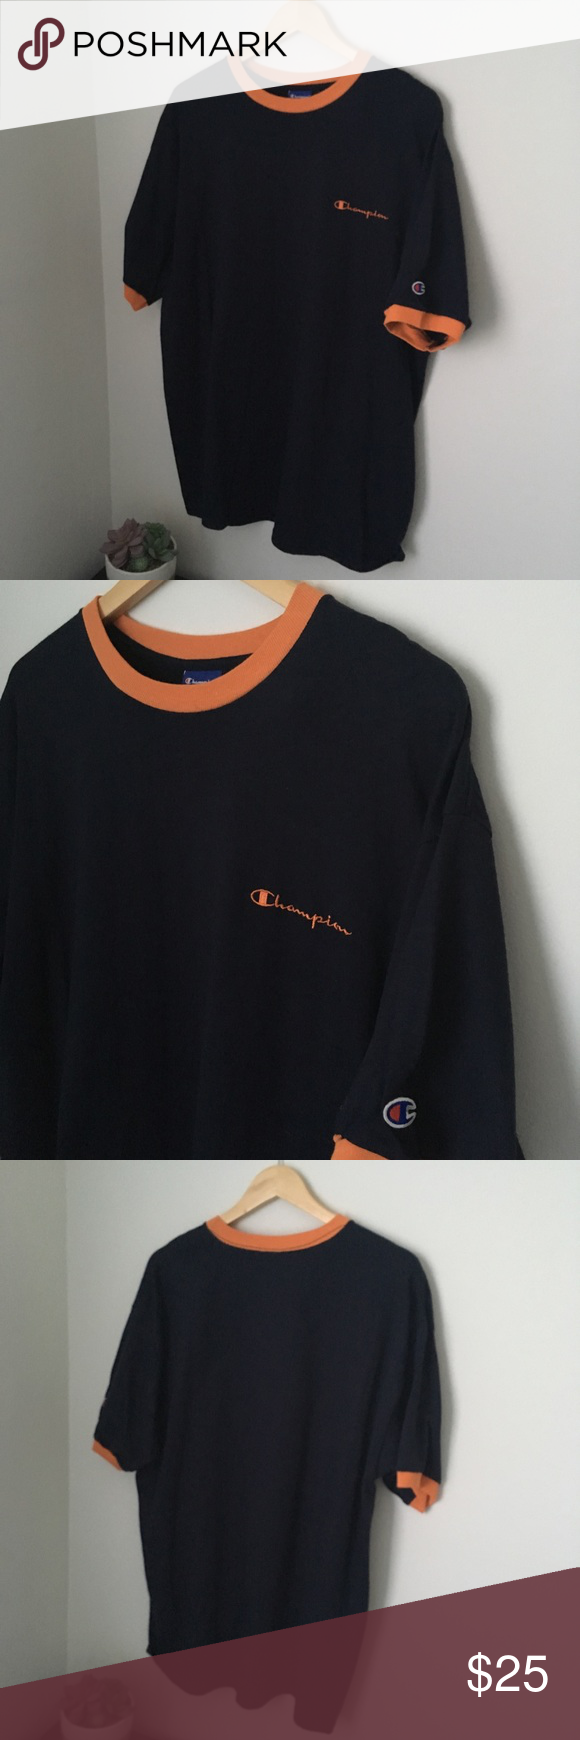 73a58f79 vintage Navy blue and orange champion tee Vintage deadstock navy blue and  orange ringer tee Supreme condition Brand new without tags Never worn Fits  perfect ...